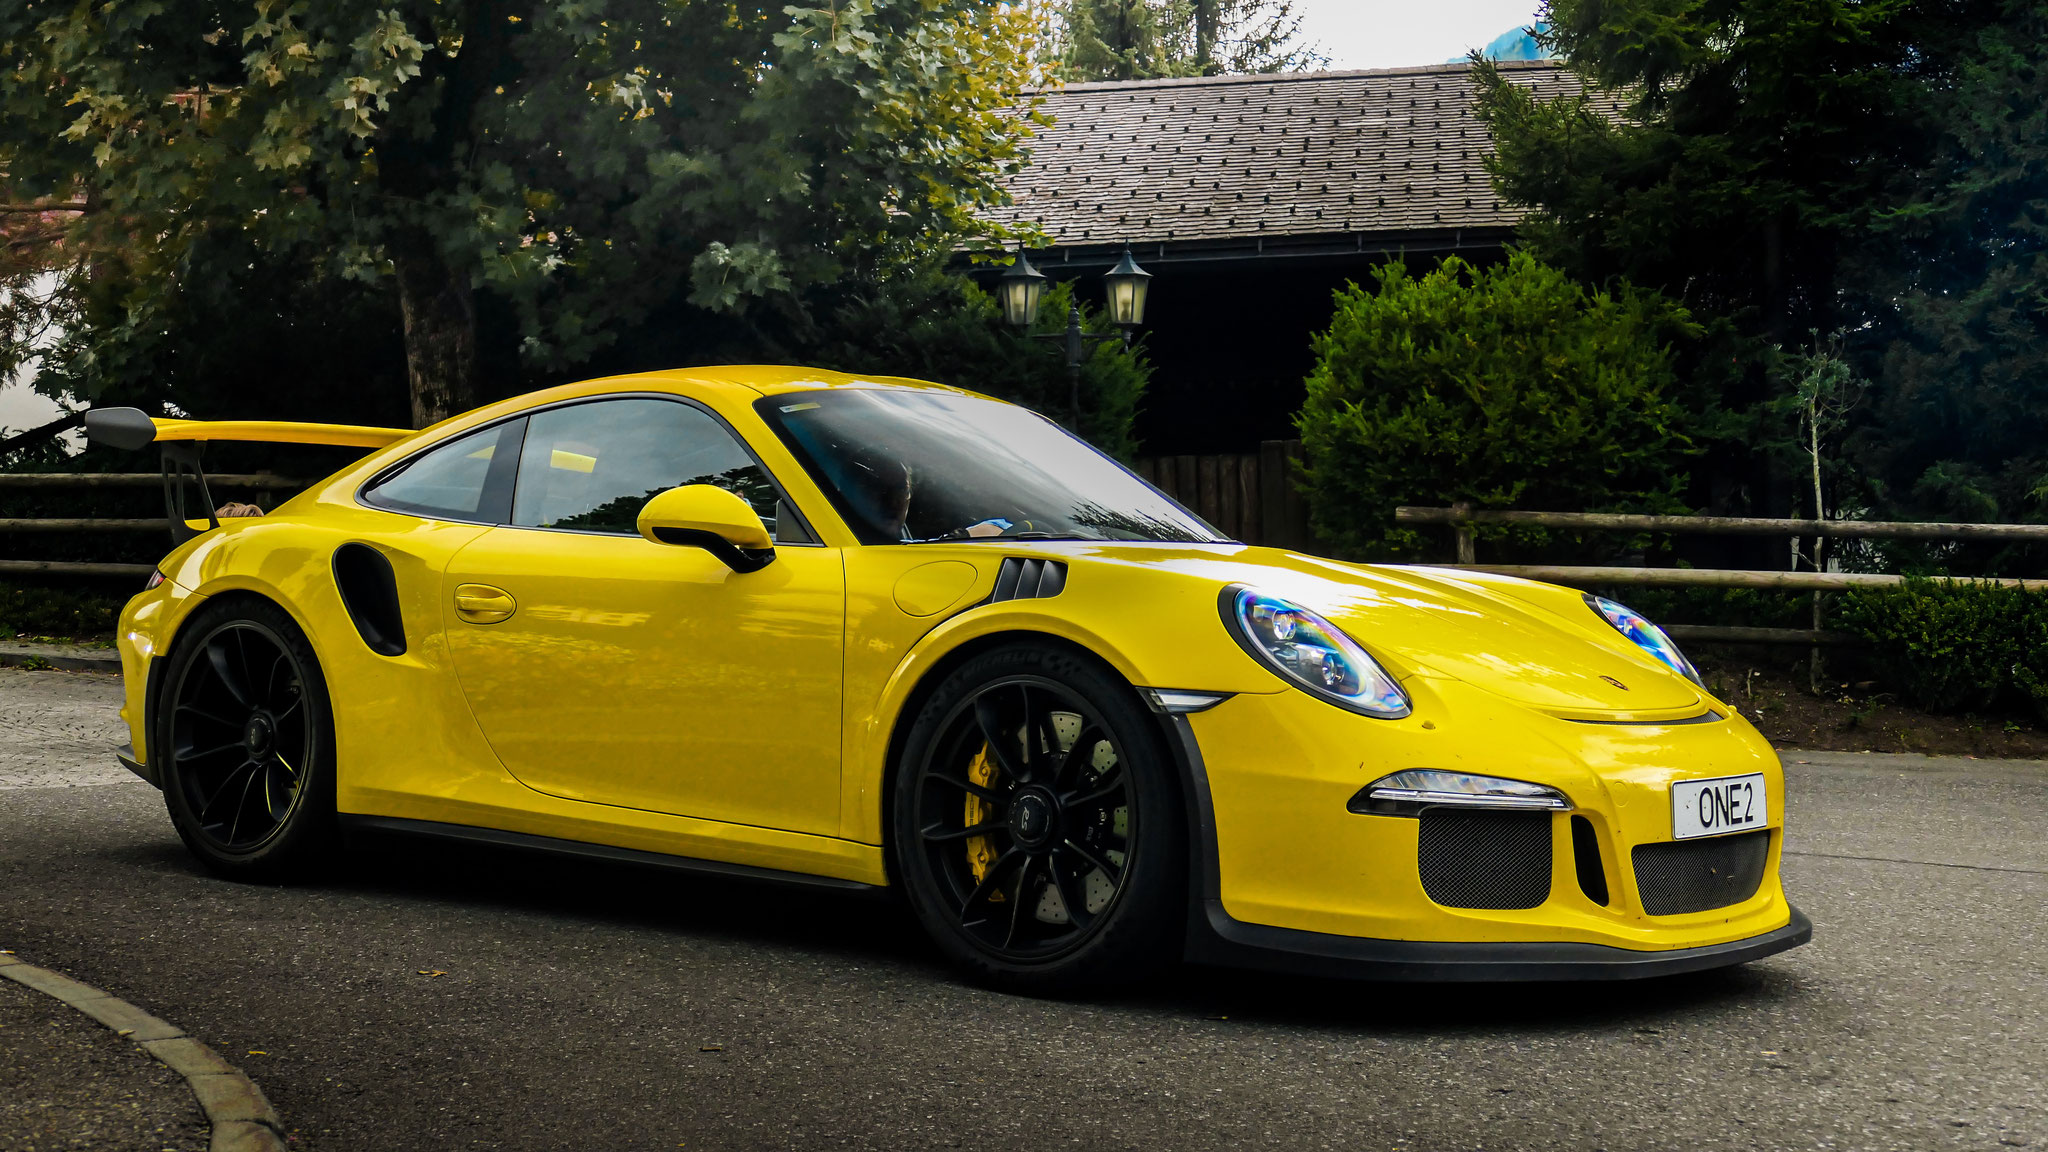 Porsche 911 GT3 RS - ONE2 (GB)